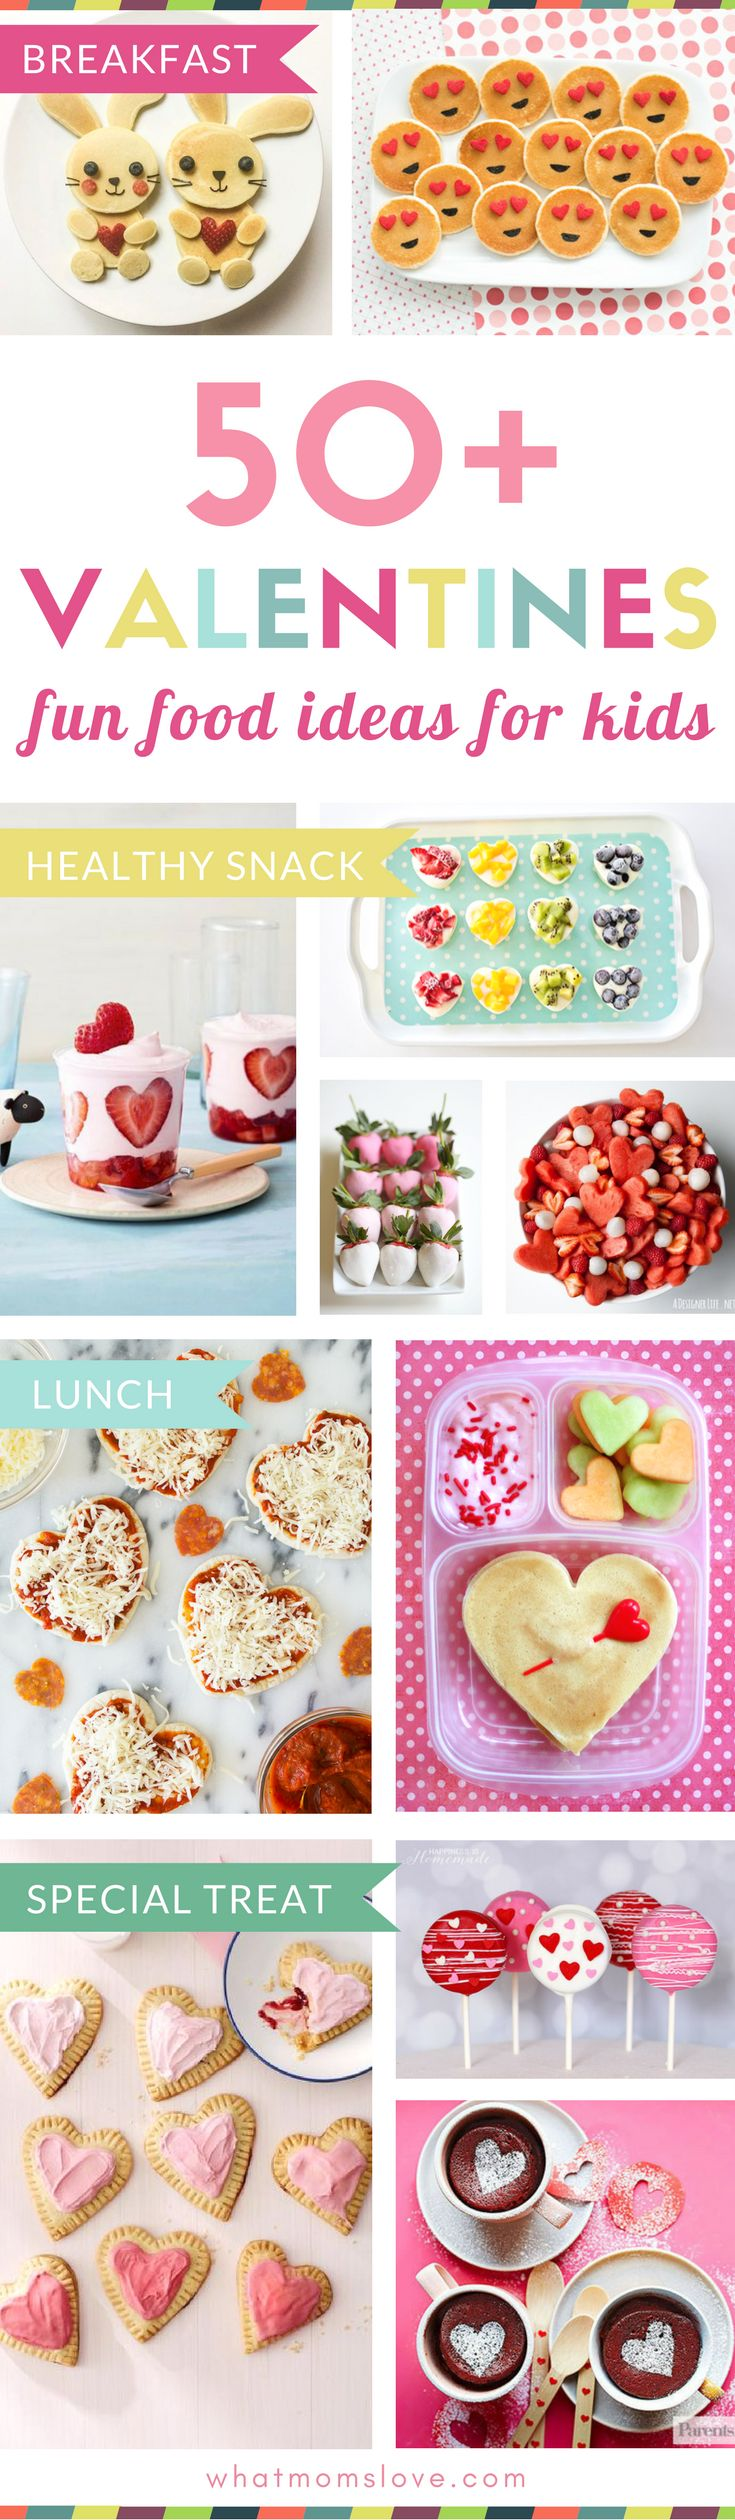 60d81e3b971a525880ca73d57dff1525 - Fun Valentines Day Food Ideas for Kids | Cute recipes to make for families inclu...